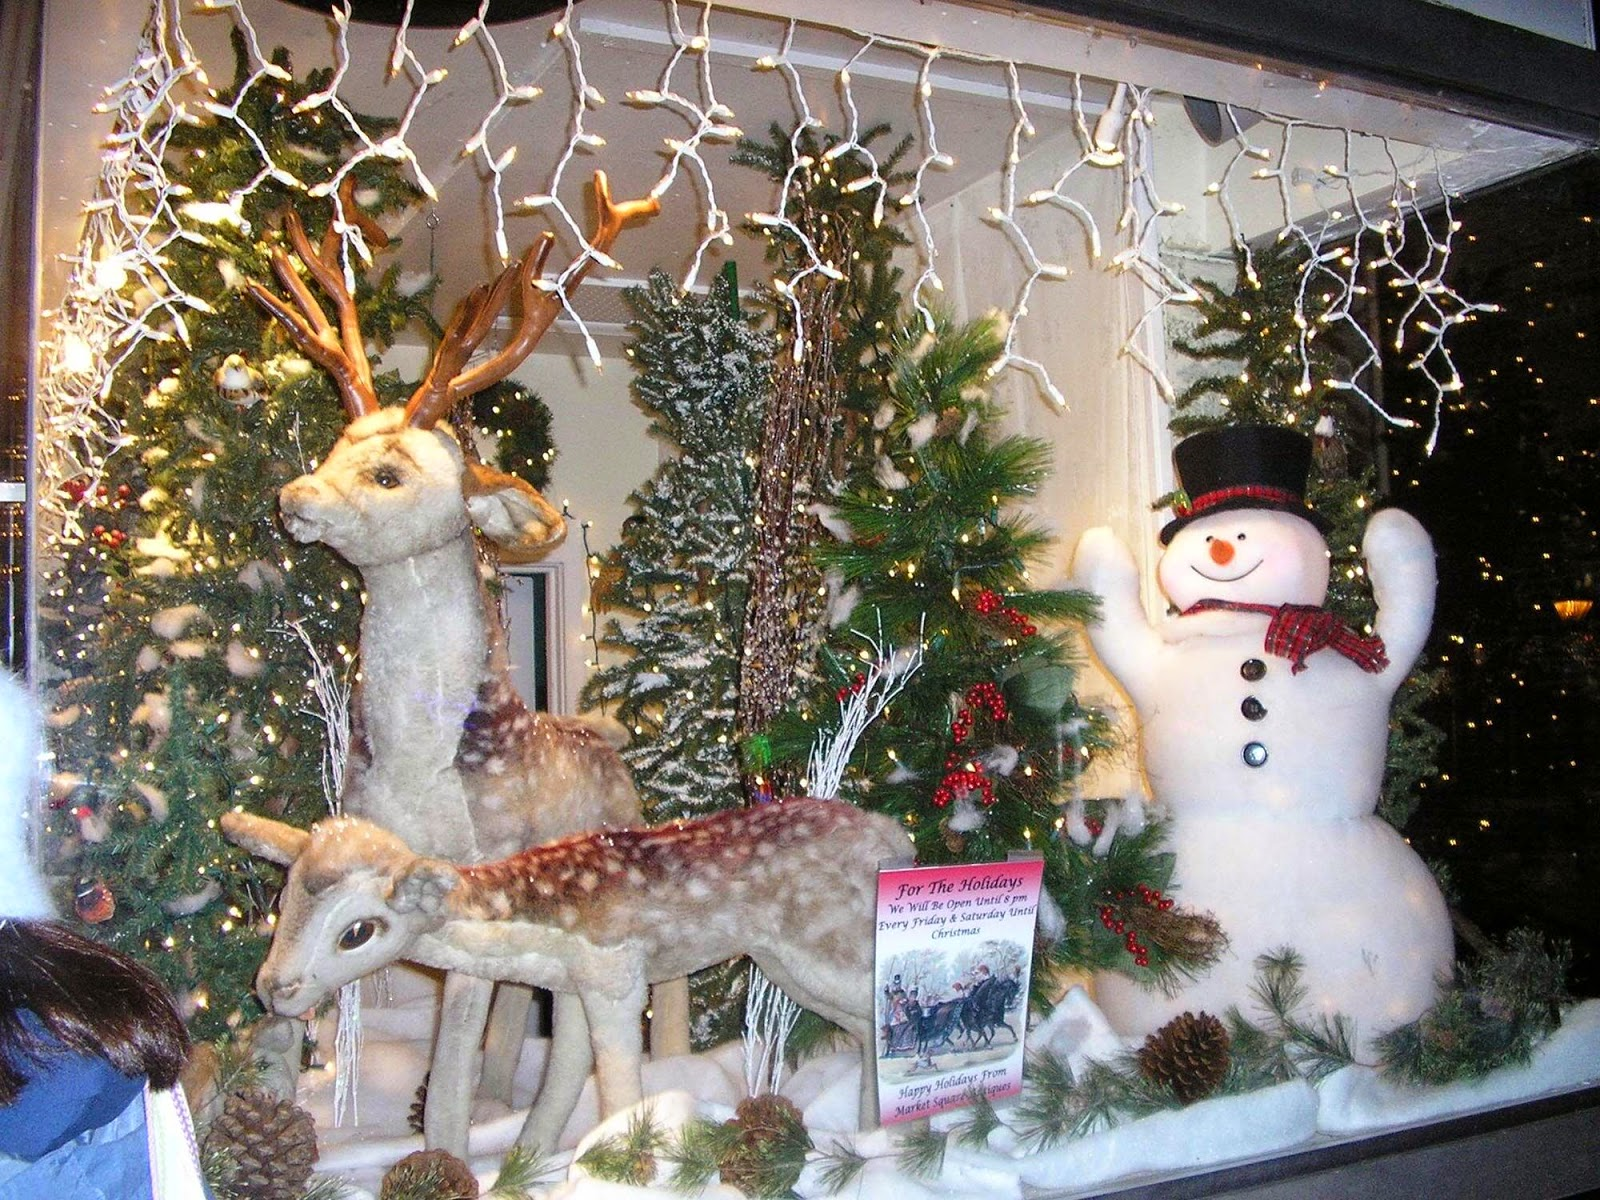 Design Home Pictures: Lighted Christmas Decorations